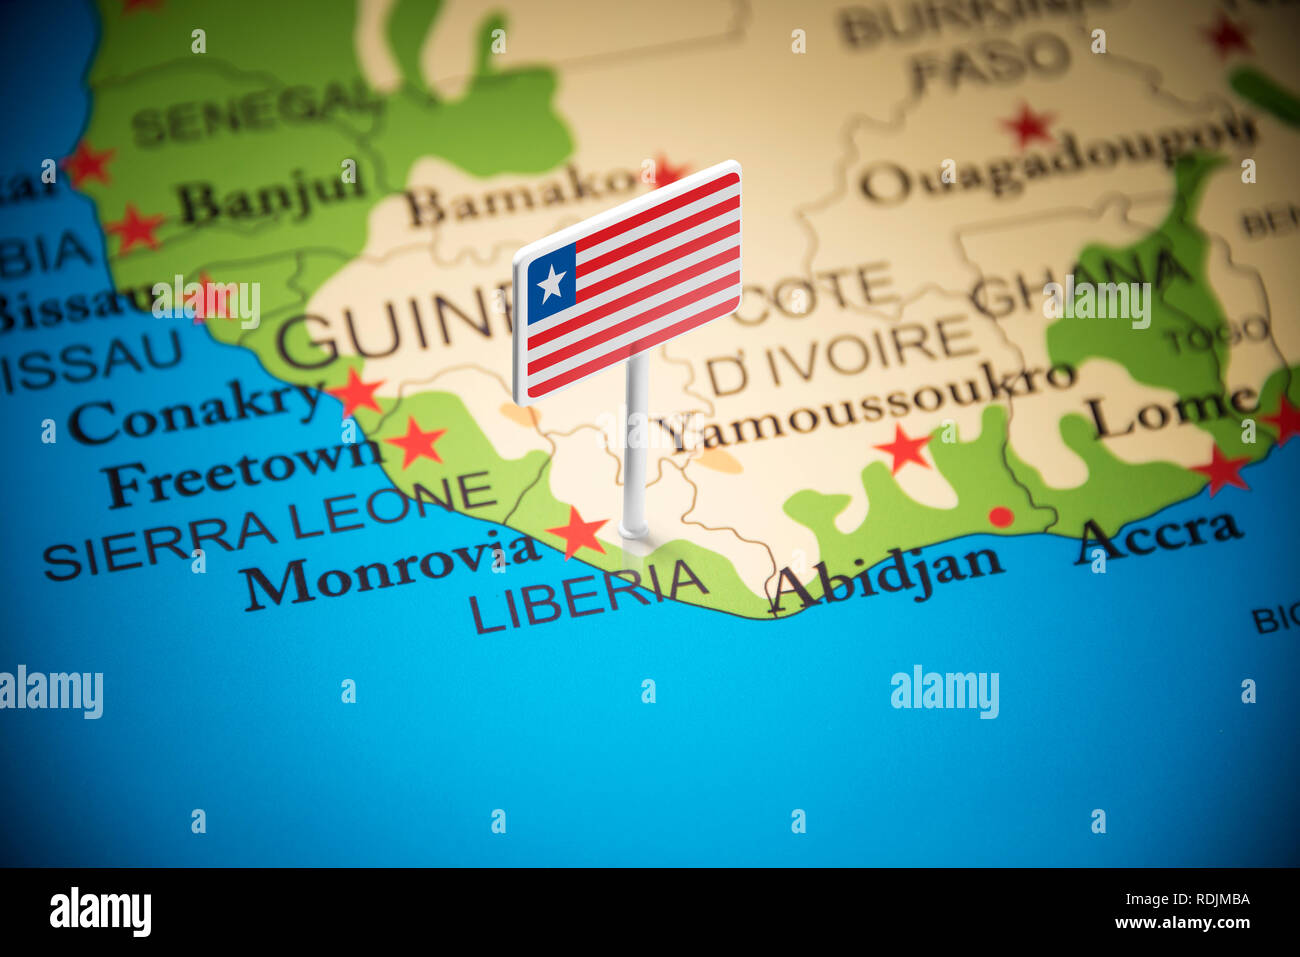 Liberia marked with a flag on the map Stock Photo